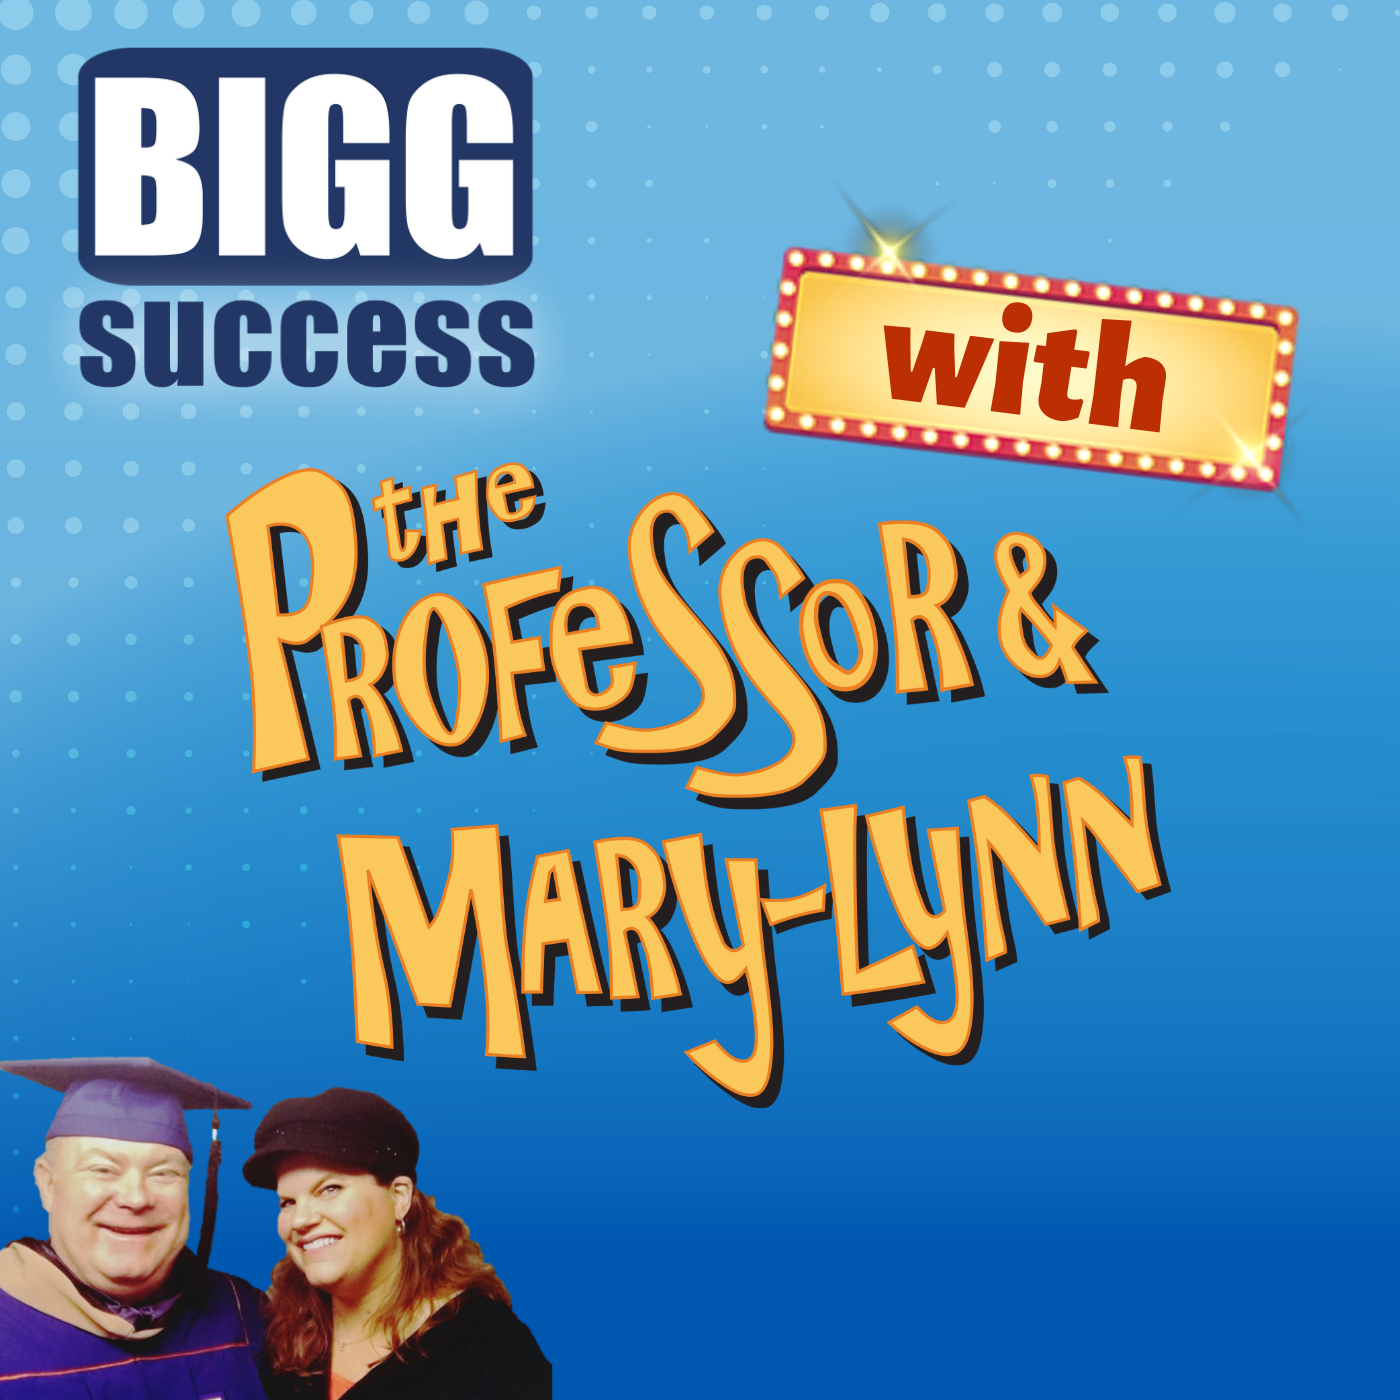 The BIGG Success Show podcast with the Professor and Mary-Lynn